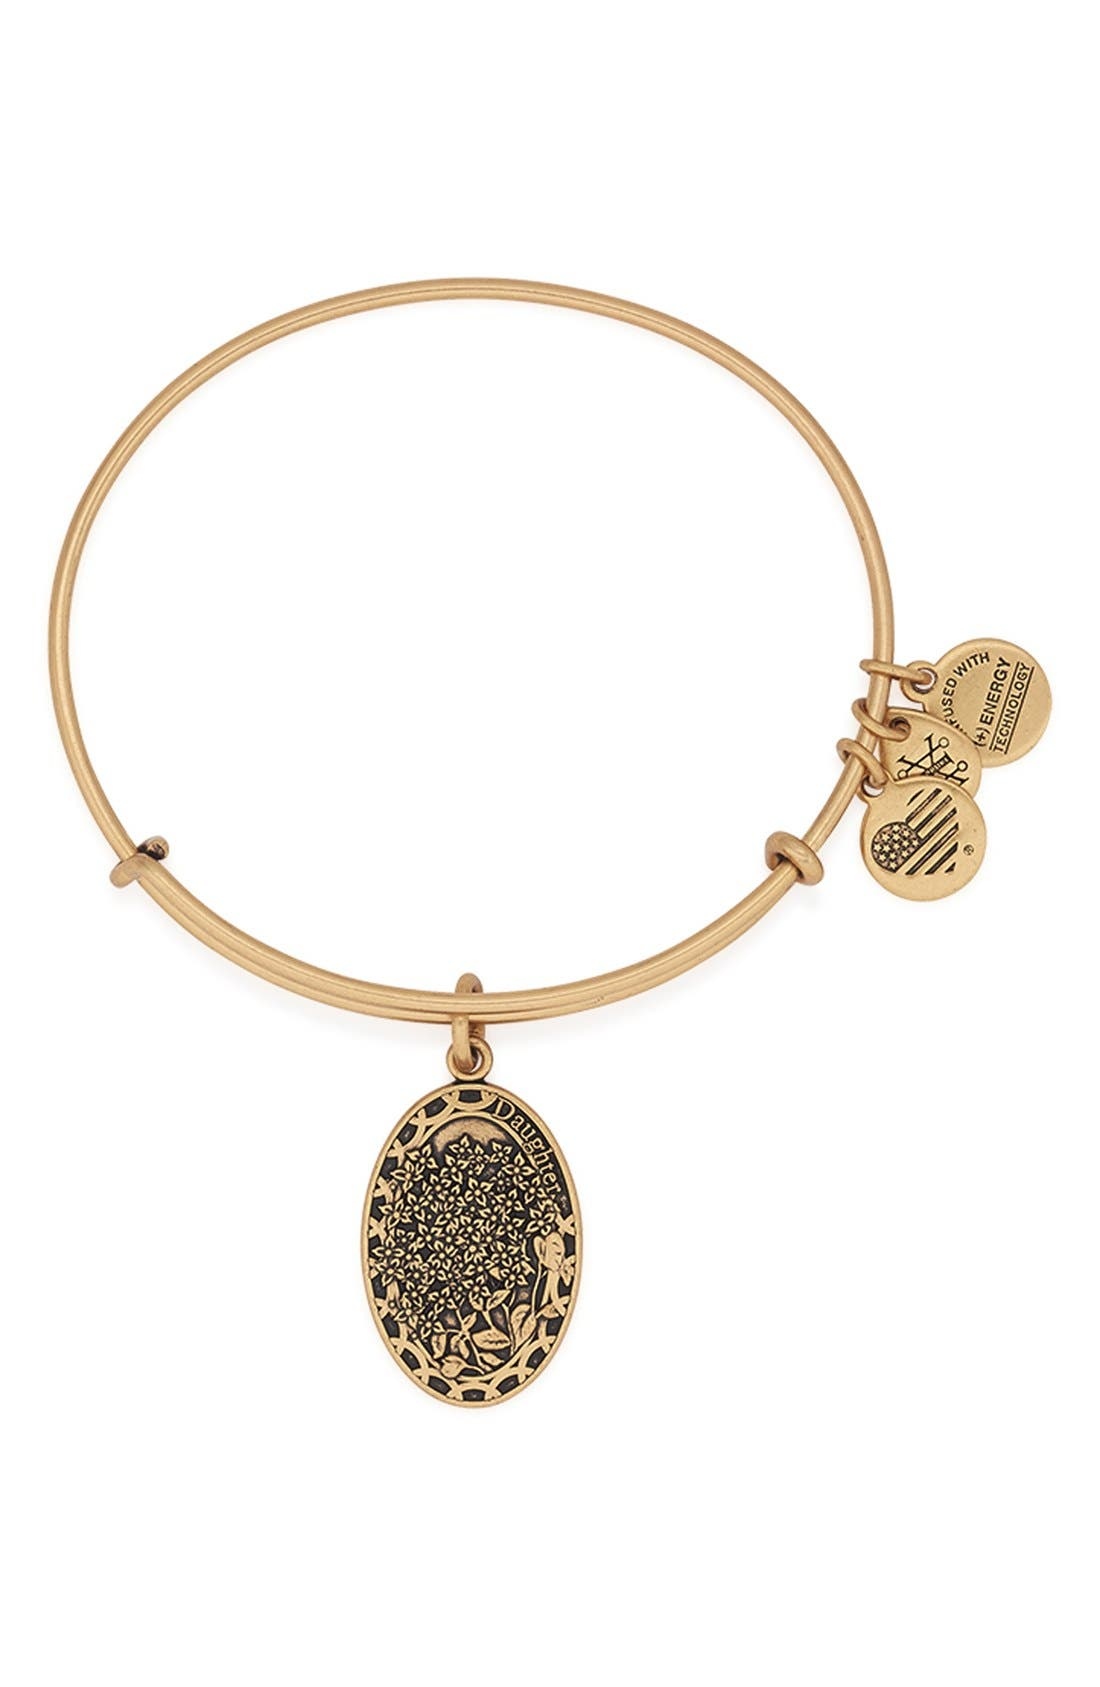 'I Love You Daughter' Expandable Wire Bangle,                             Main thumbnail 1, color,                             710